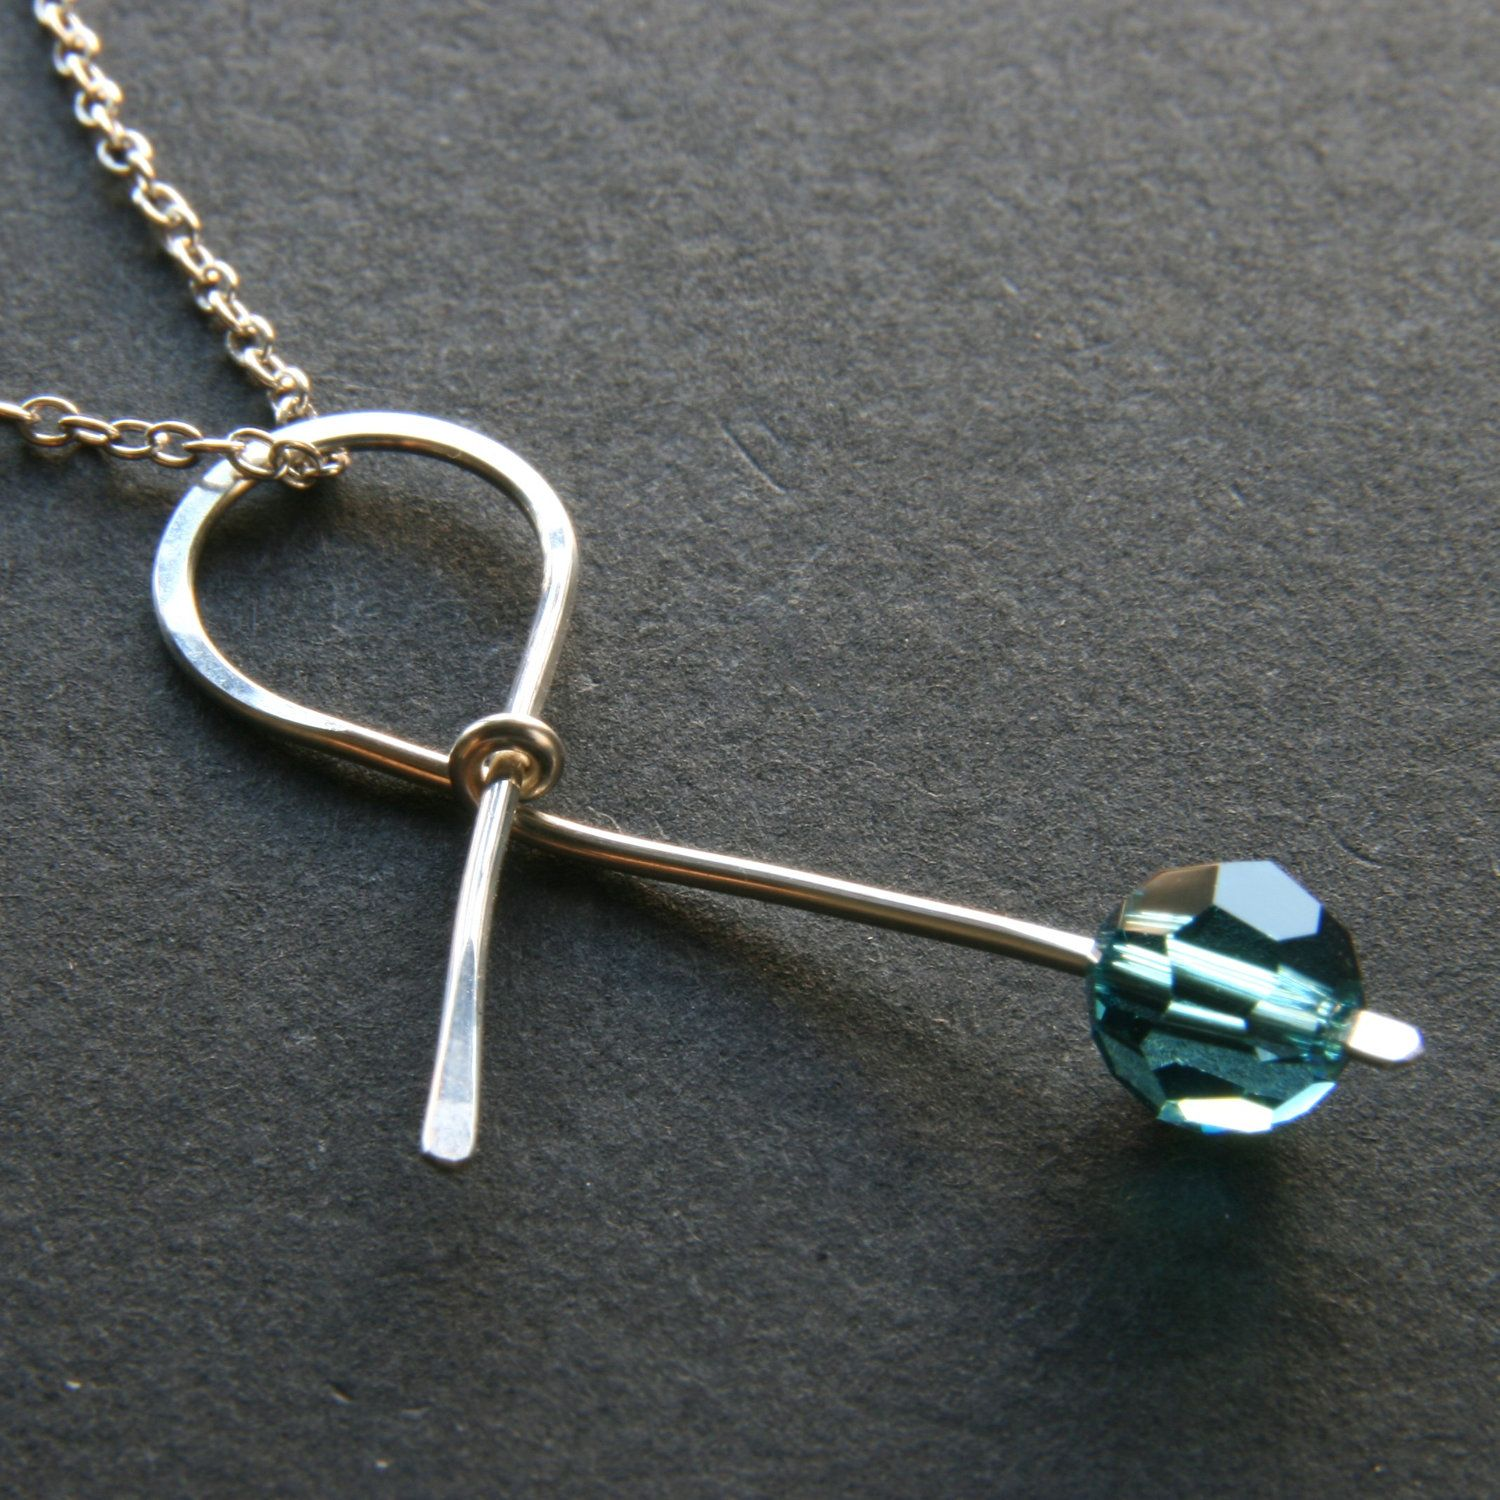 Teal Ribbon Sterling Silver Necklace 36 00 Via Etsy With Images Survivor Jewelry Awareness Jewelry